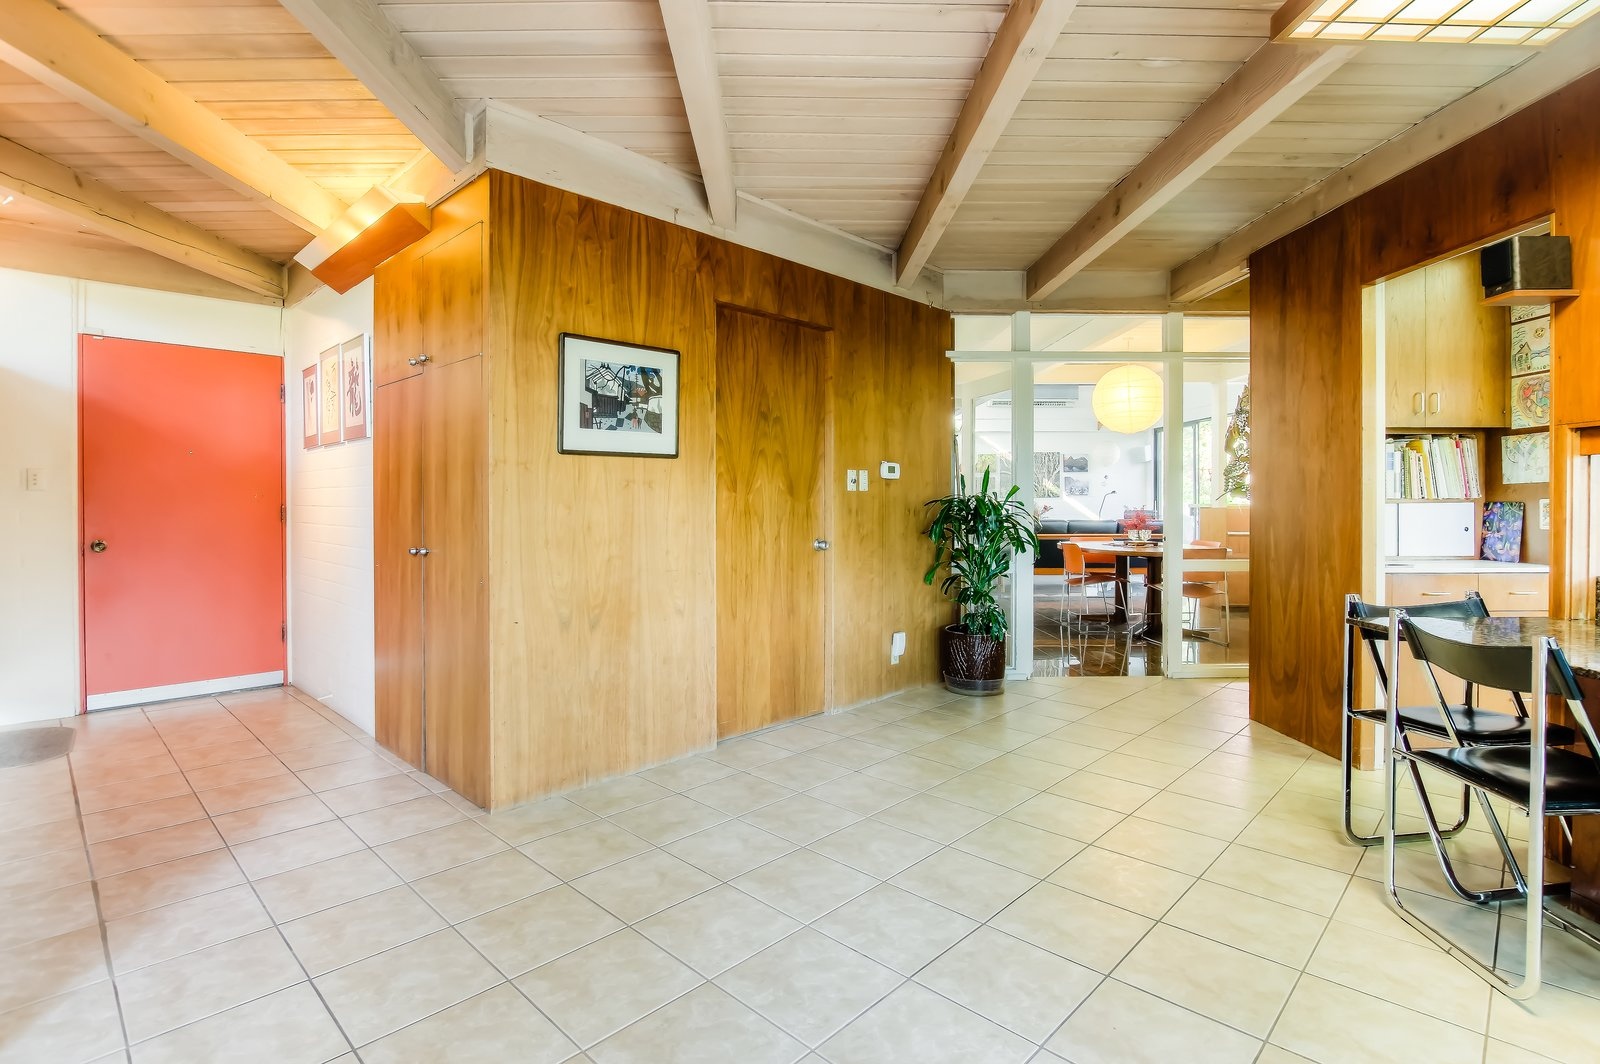 Hallway  Photo 4 of 10 in An Exceptional Midcentury by Case Study Architect Pierre Koenig Hits the Market